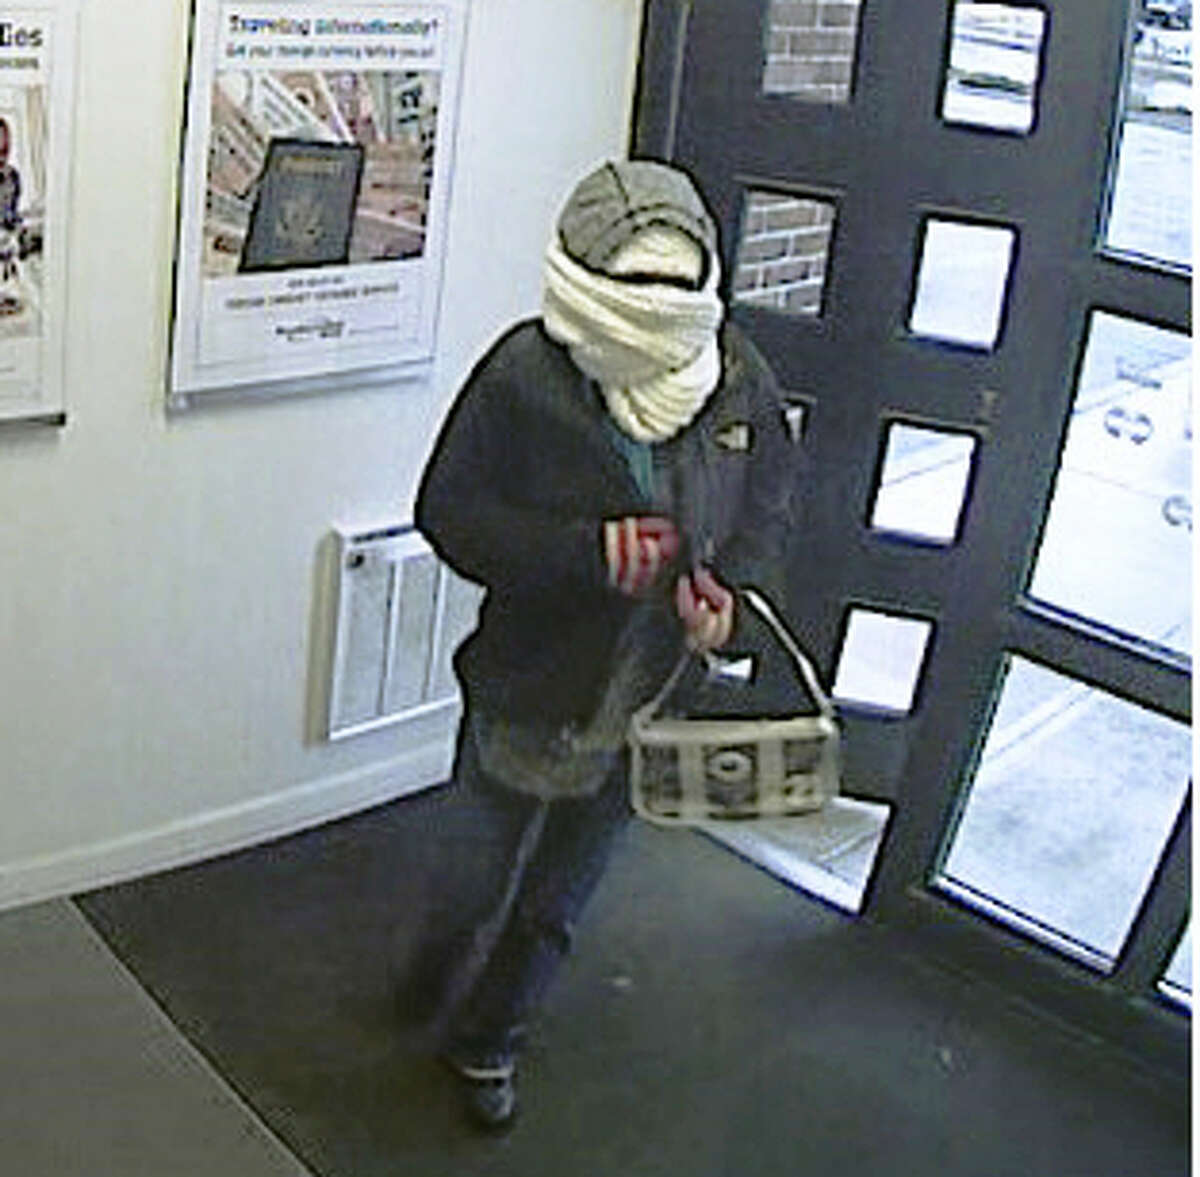 A view of the robbery suspect in the bank's lobby.